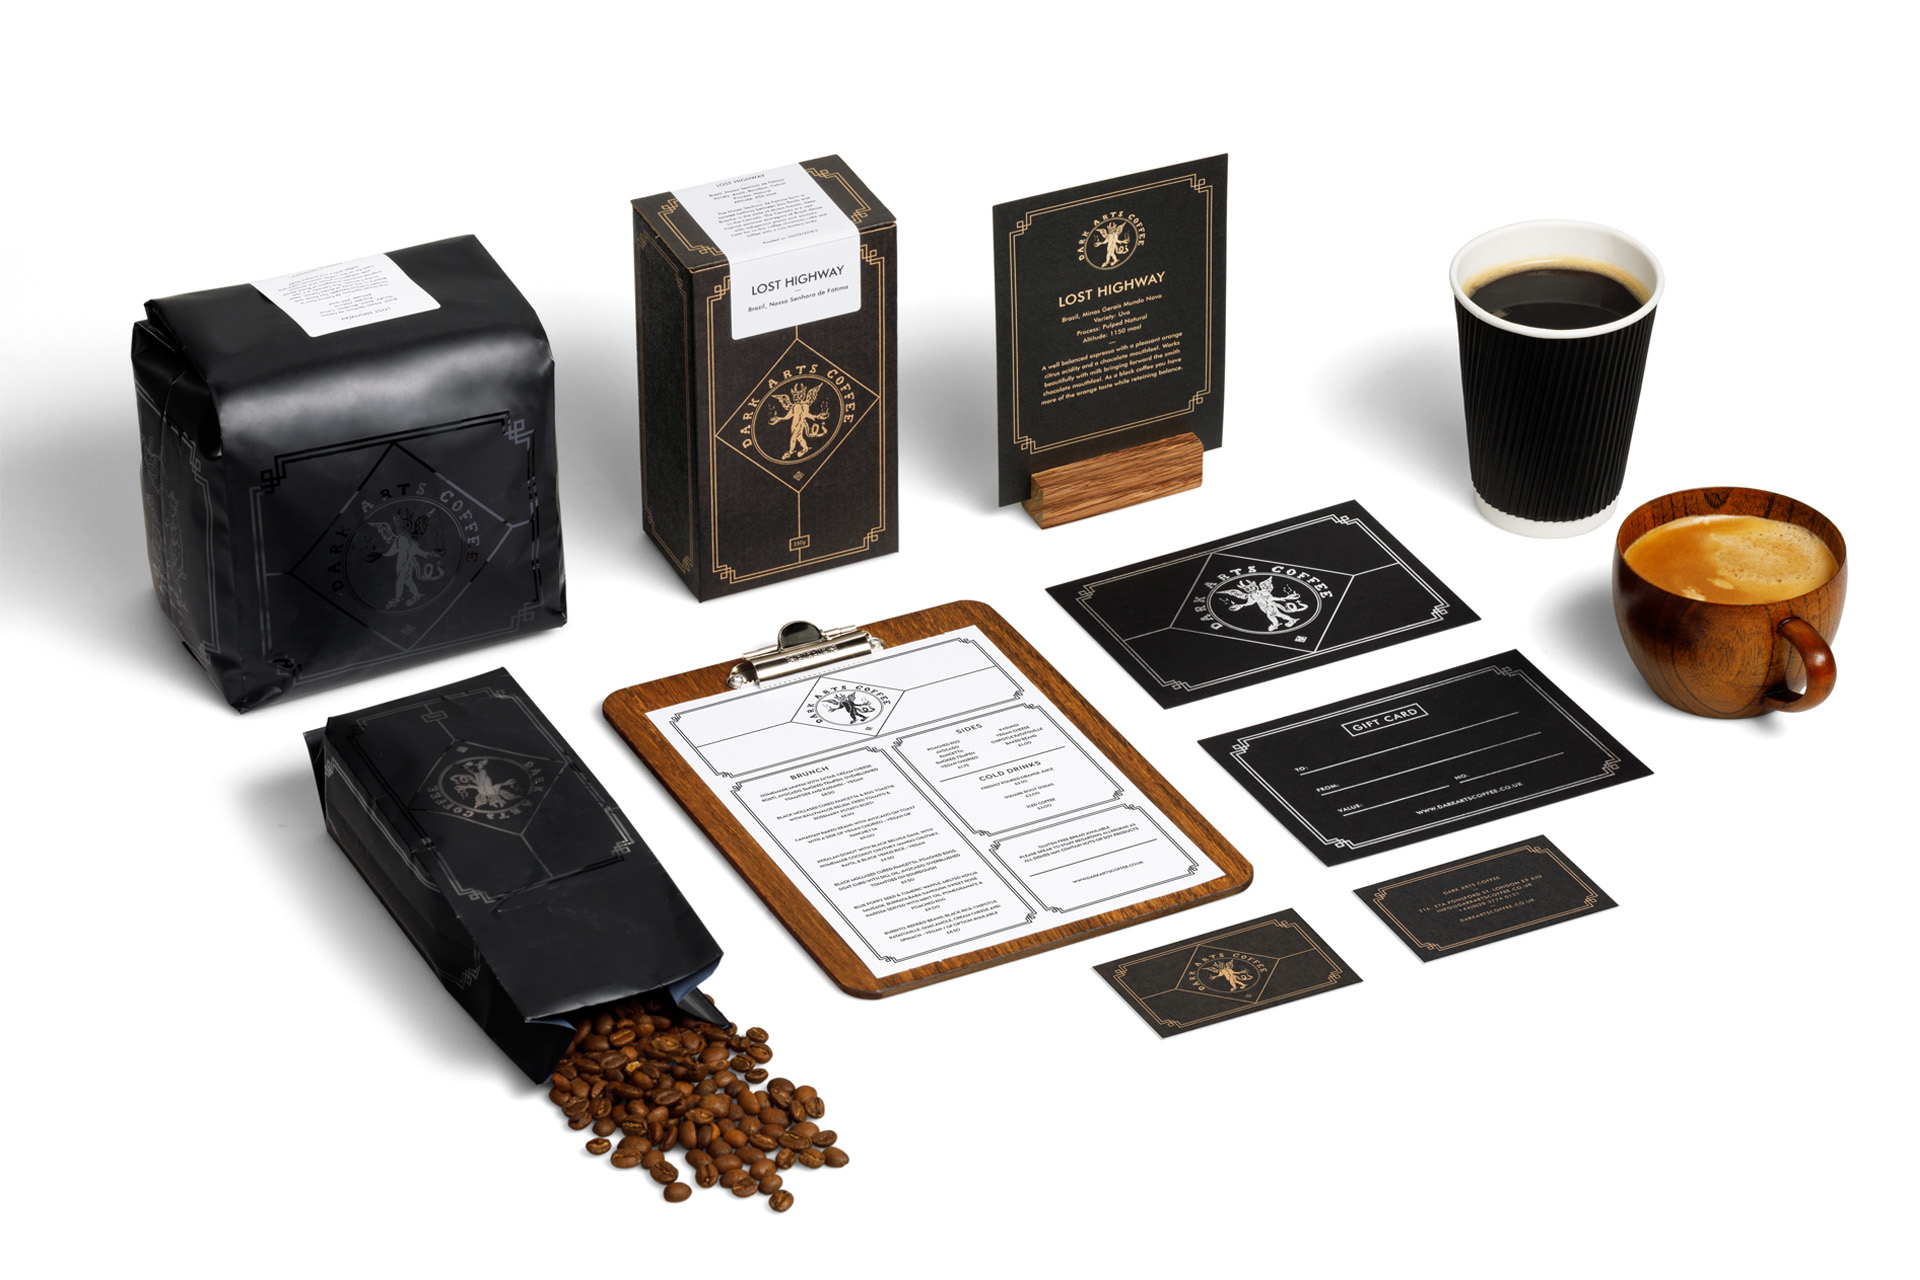 Dark Arts Coffee and Accessories - shot by Traffic Jam Studio for Nick Dart Design.